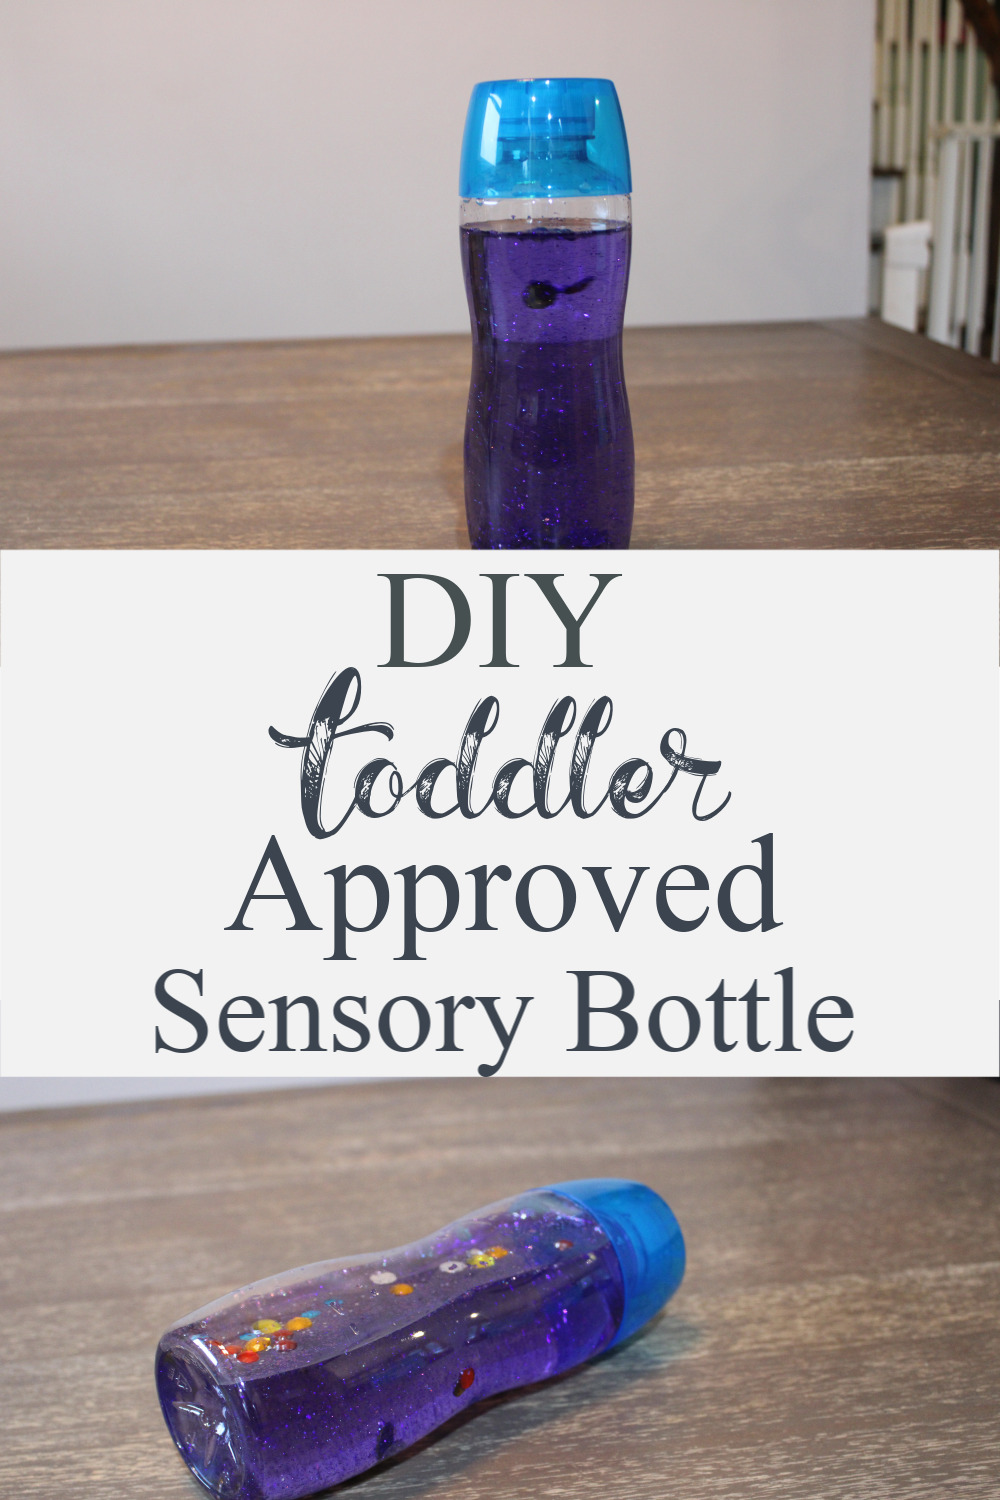 Hey guys, I'm back with another great DIY for the kids! This DIY Toddler Approved Sensory Bottle will keep the little ones busy for hours!